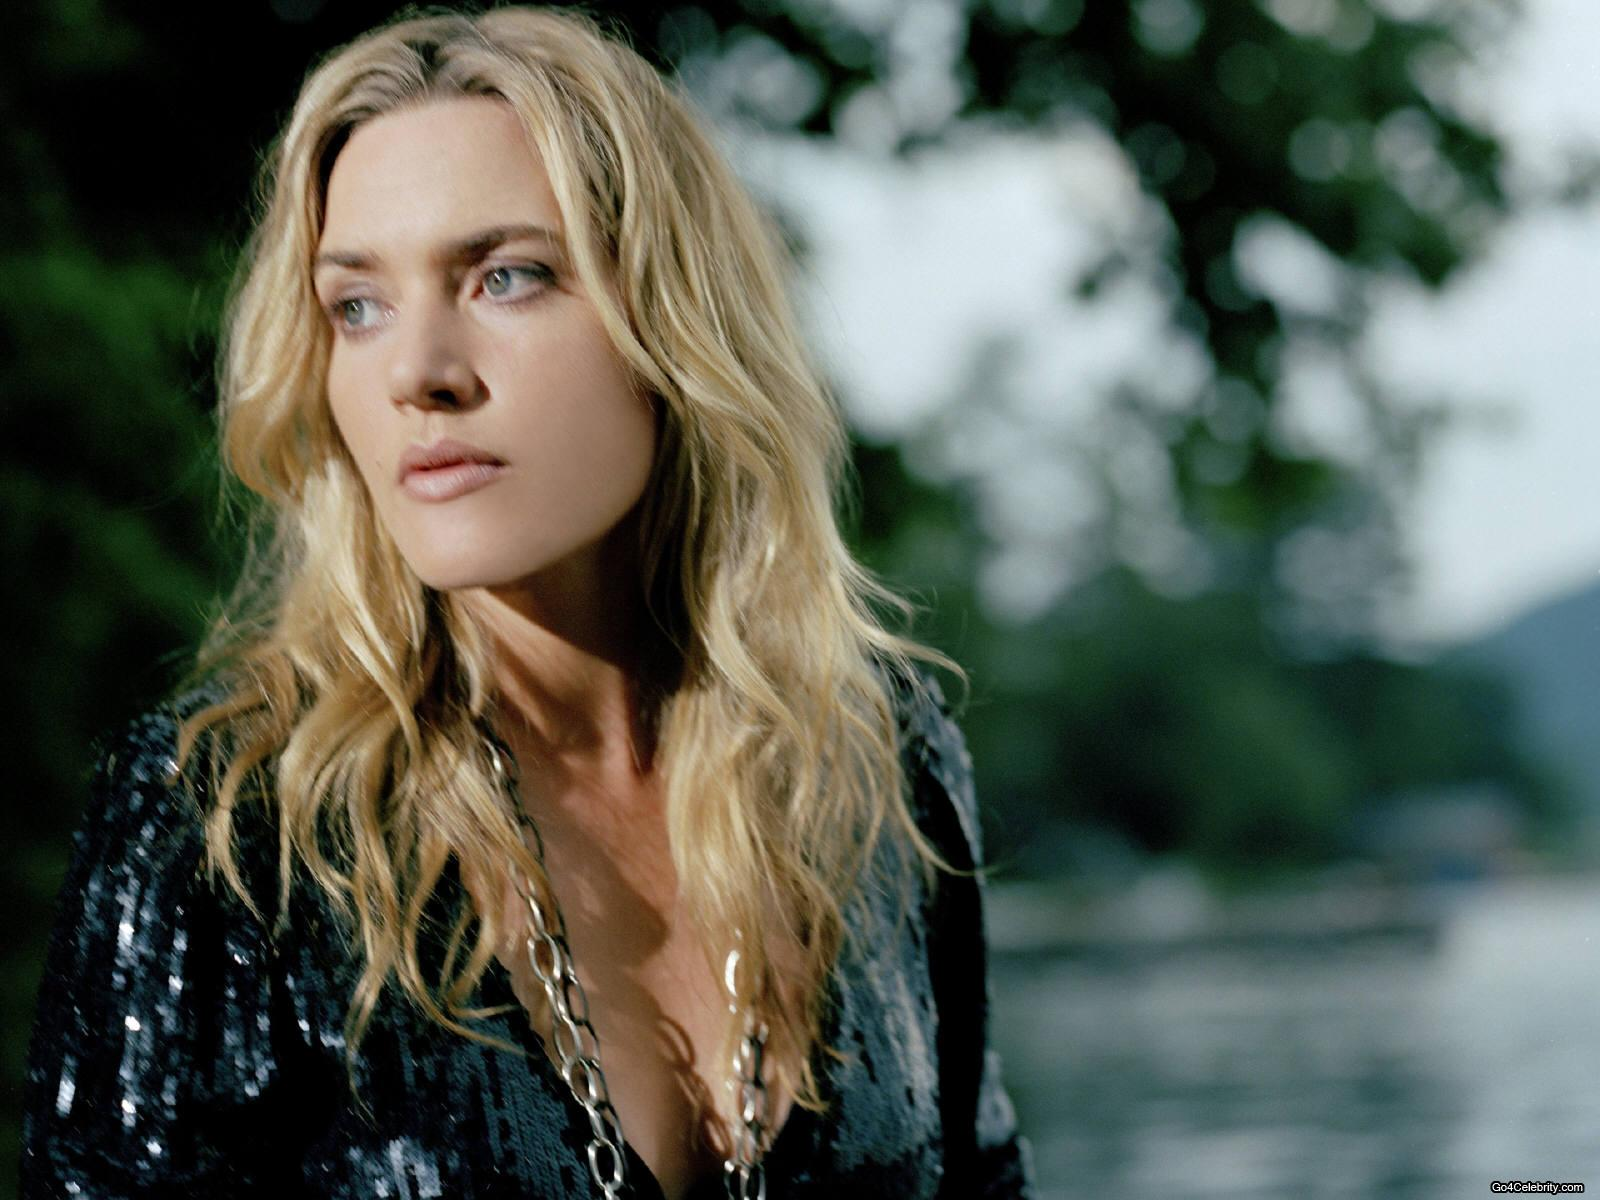 http://2.bp.blogspot.com/-loy1nd81ABc/TcqzCad4JqI/AAAAAAAAAPw/rPd0B_tCsho/s1600/Kate-Winslet-HD-Wallpapers-3.jpg